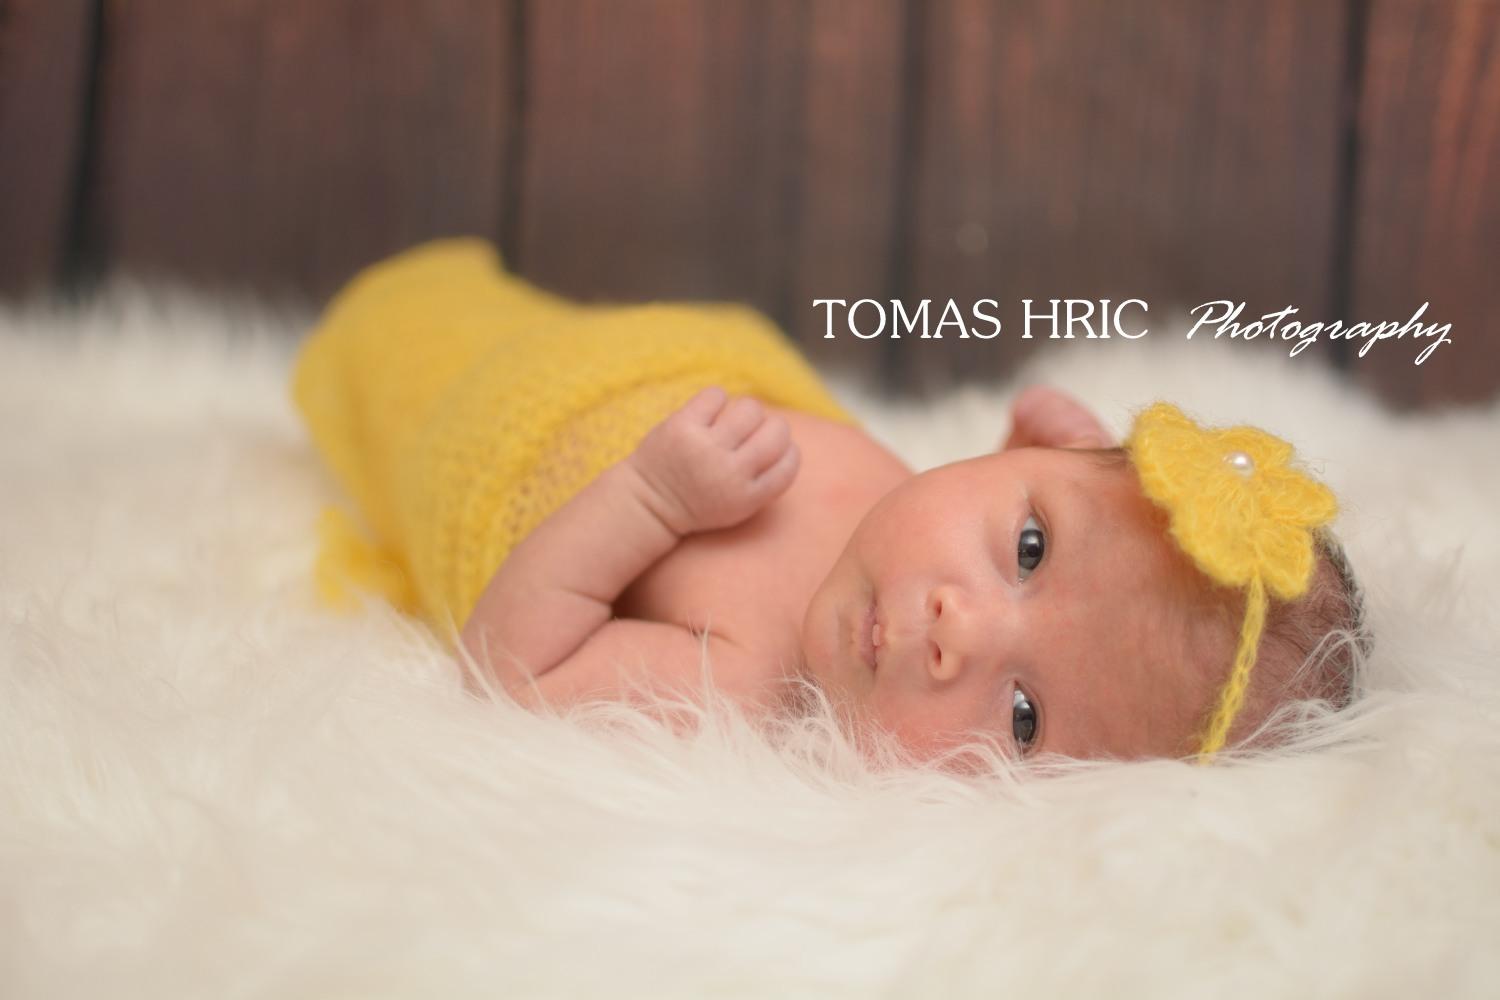 Tomas Hric Photography Northern Virginia Newborn photographer baby girl wrapped in a yellow wrap looking at the camera